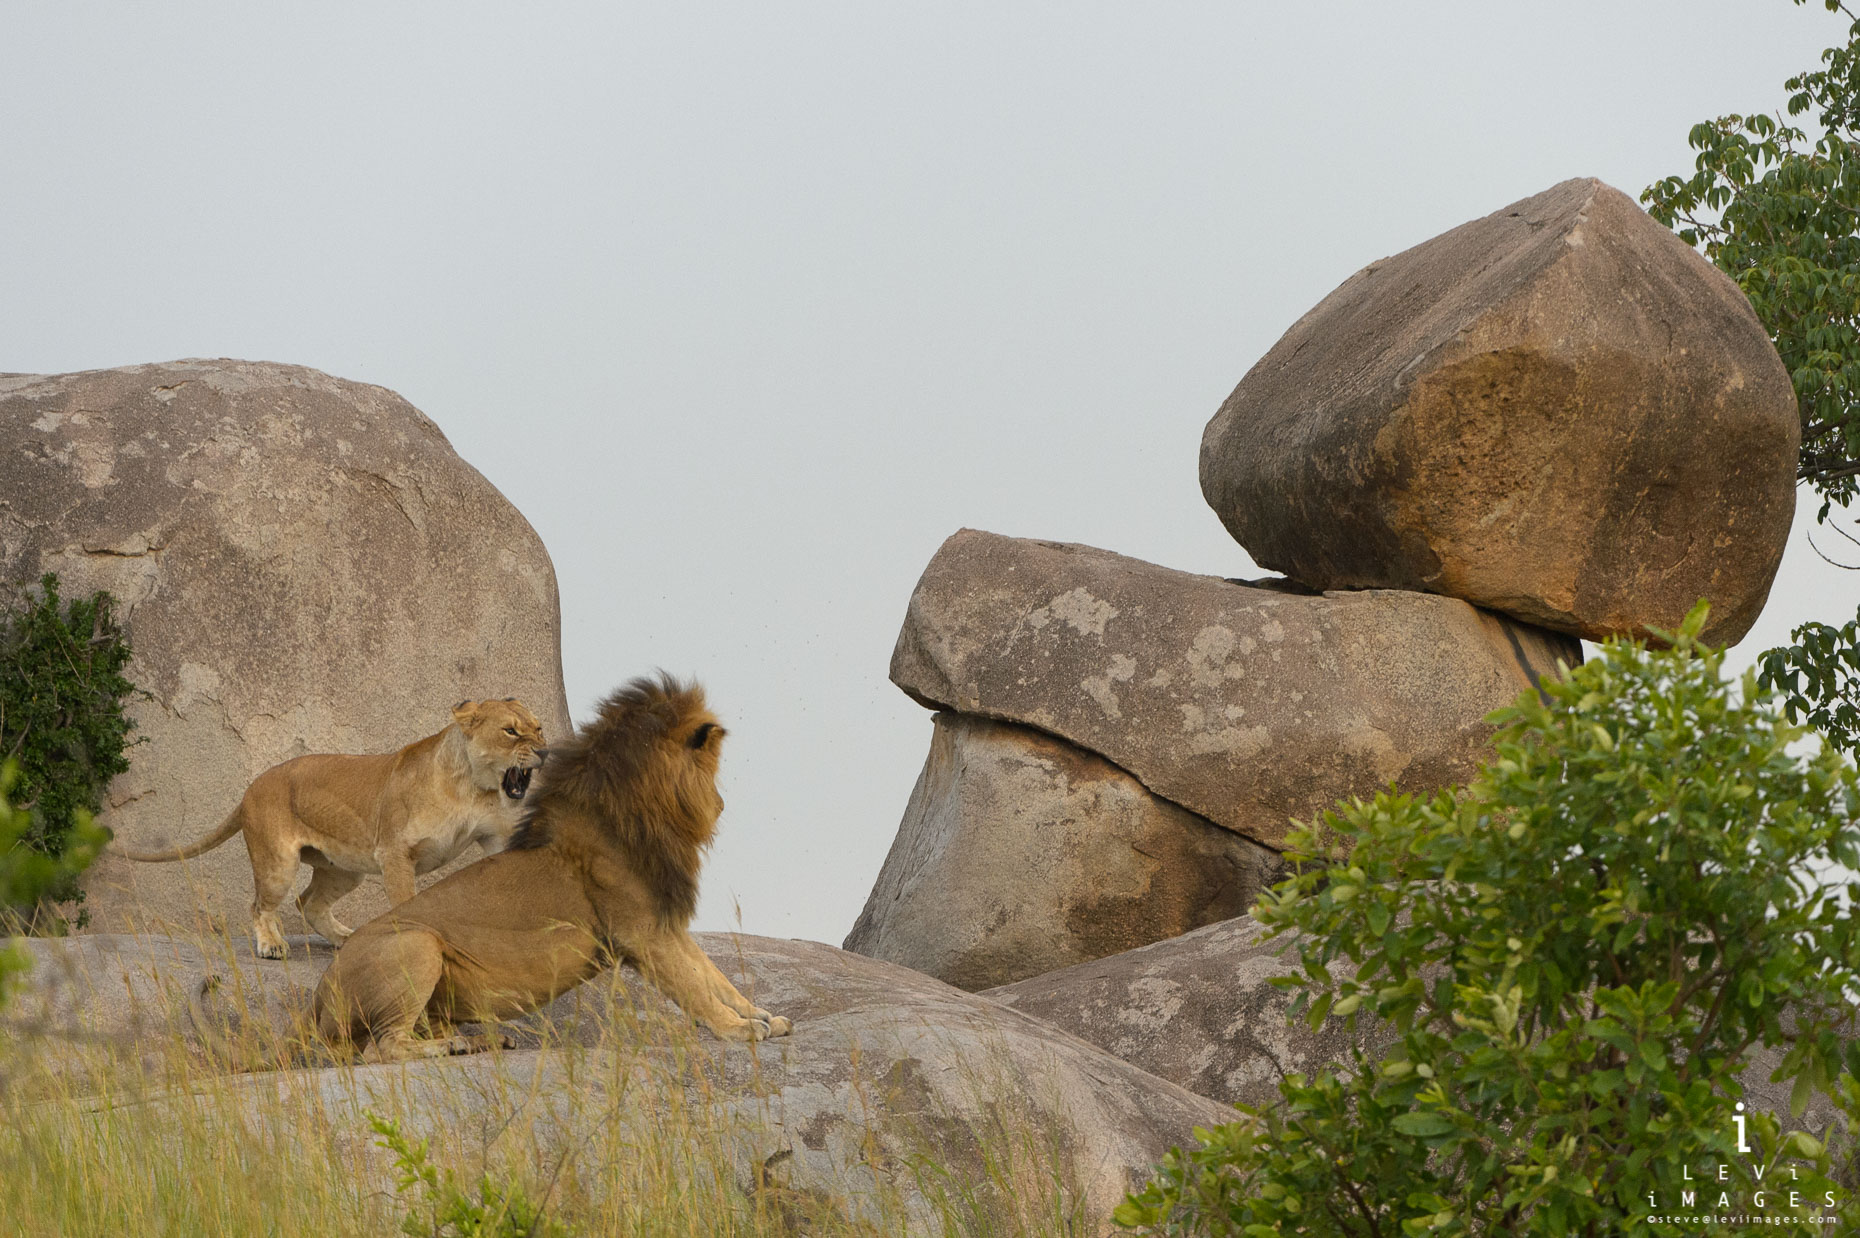 Lioness (Panthera leo) snarls at lion kopje rocks. Africa